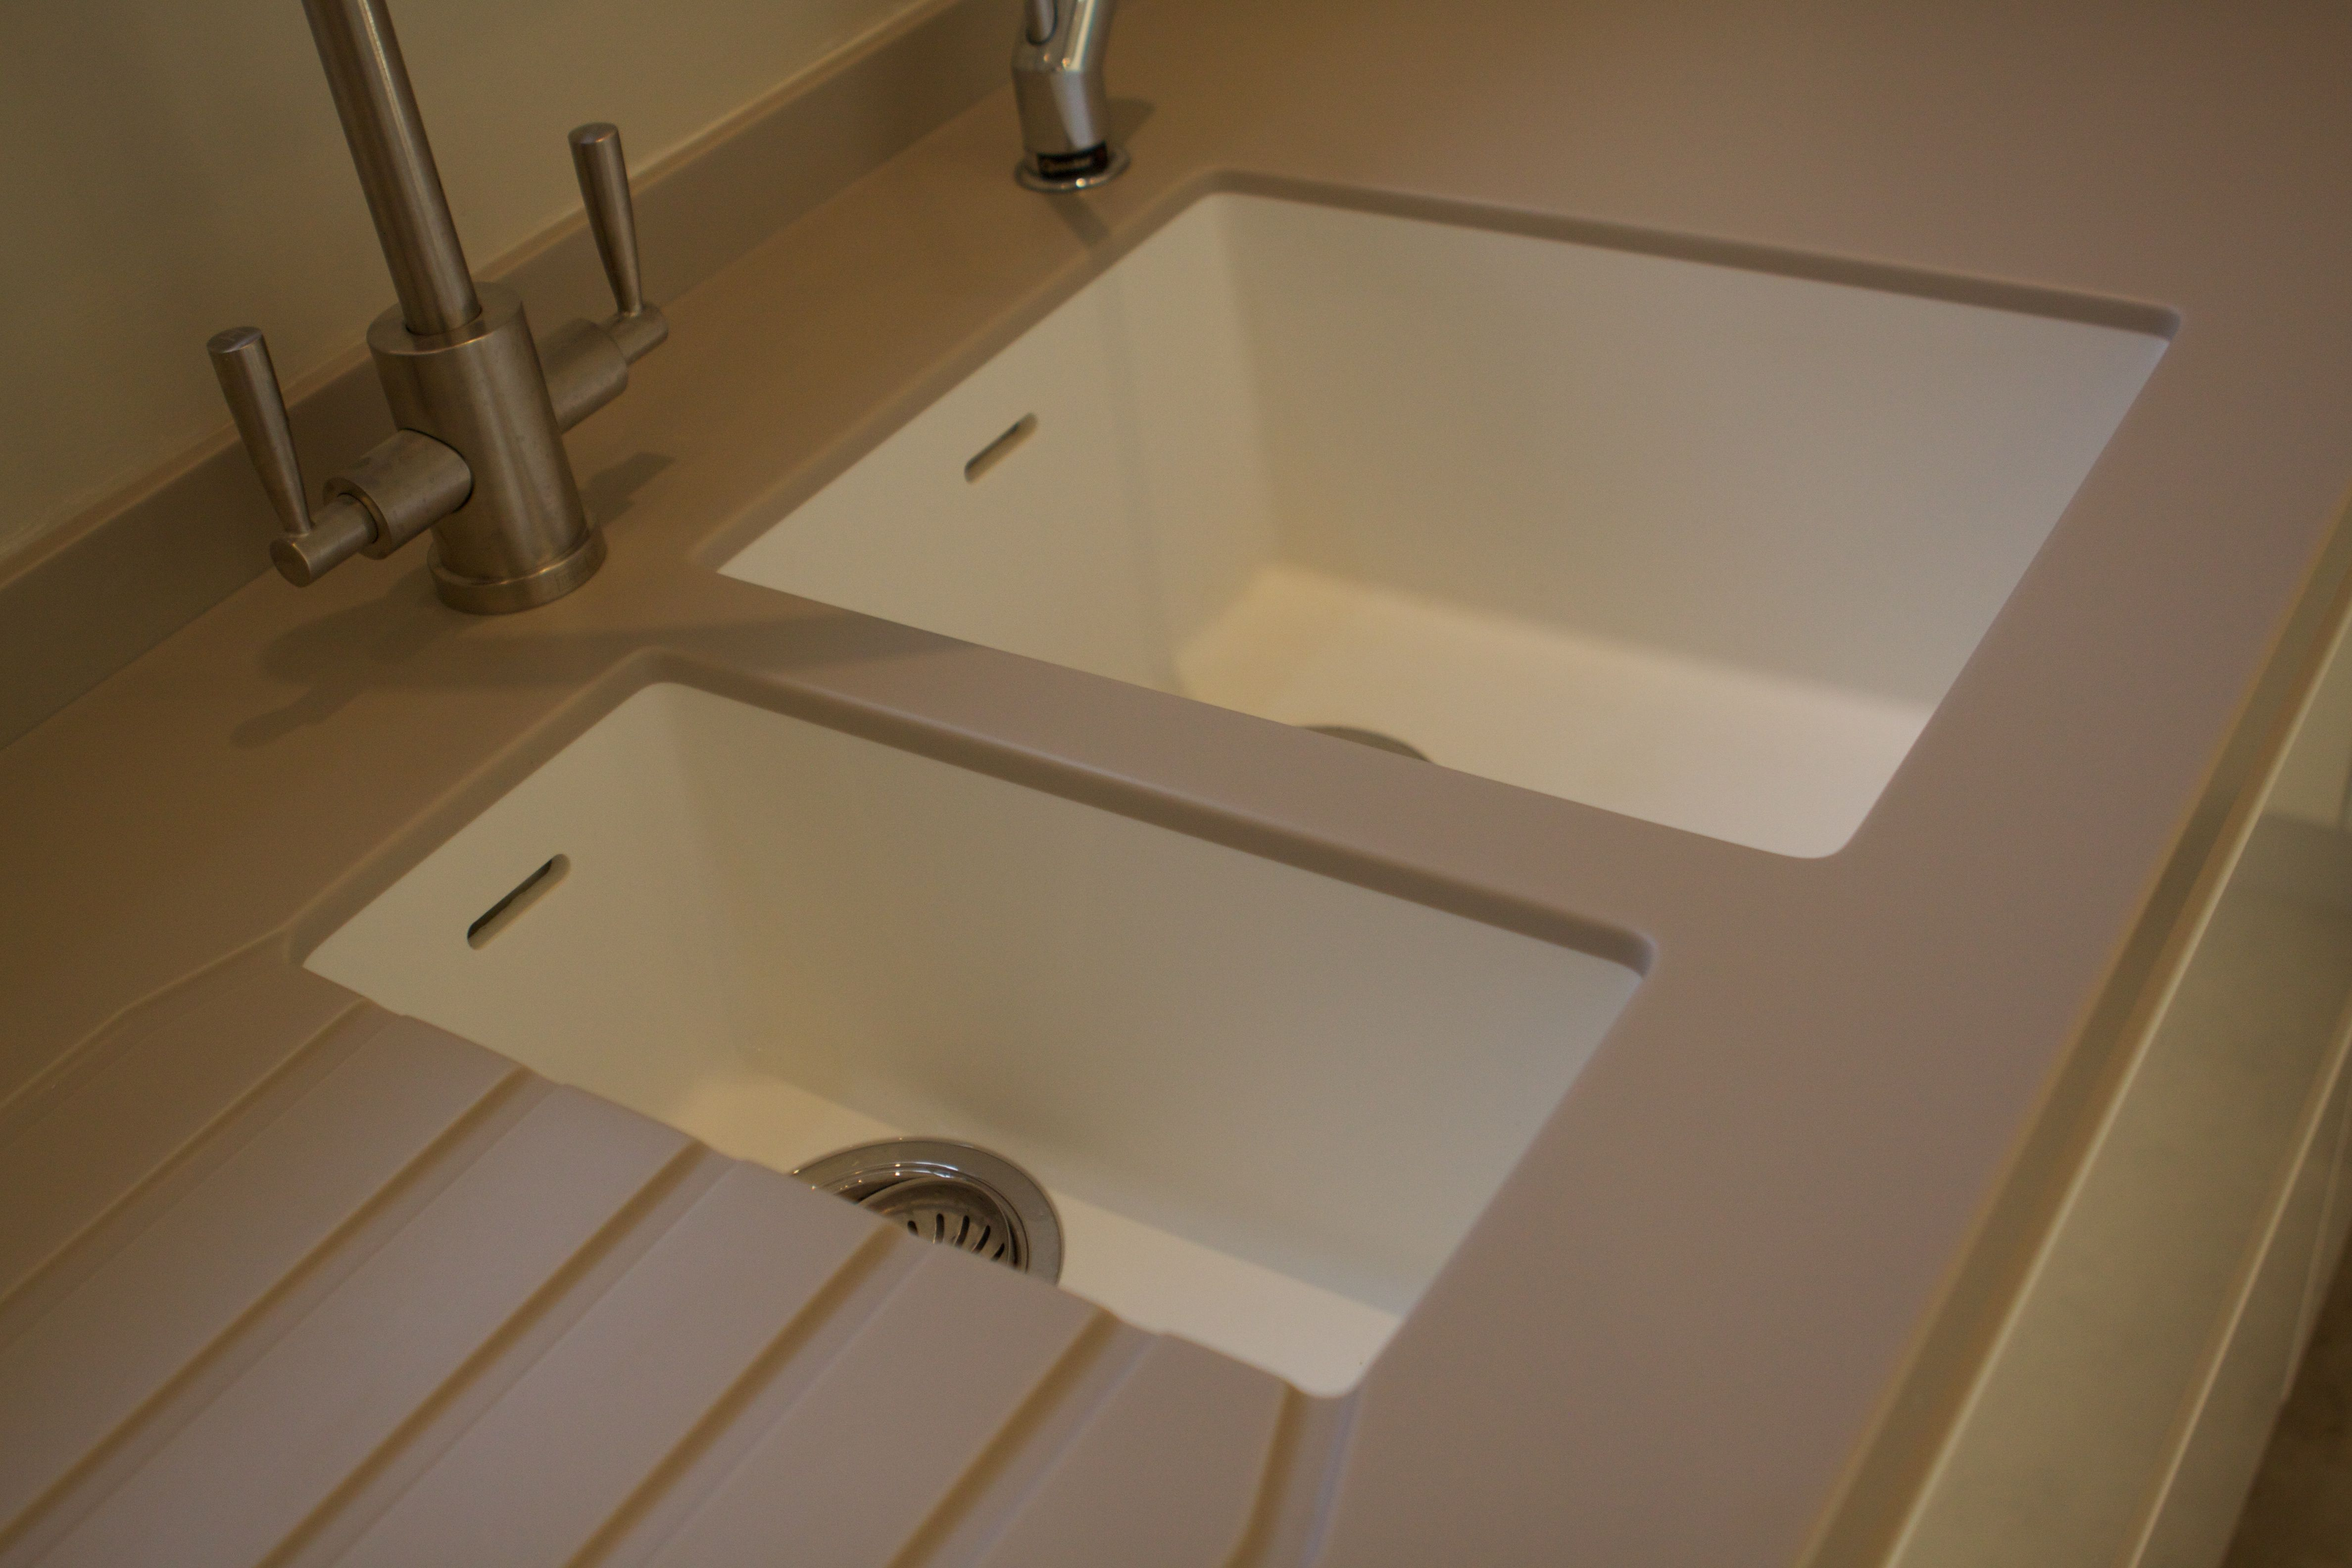 967 969 corian sinks in glacier white kitchen remodel - Corian bathroom sinks and countertops ...